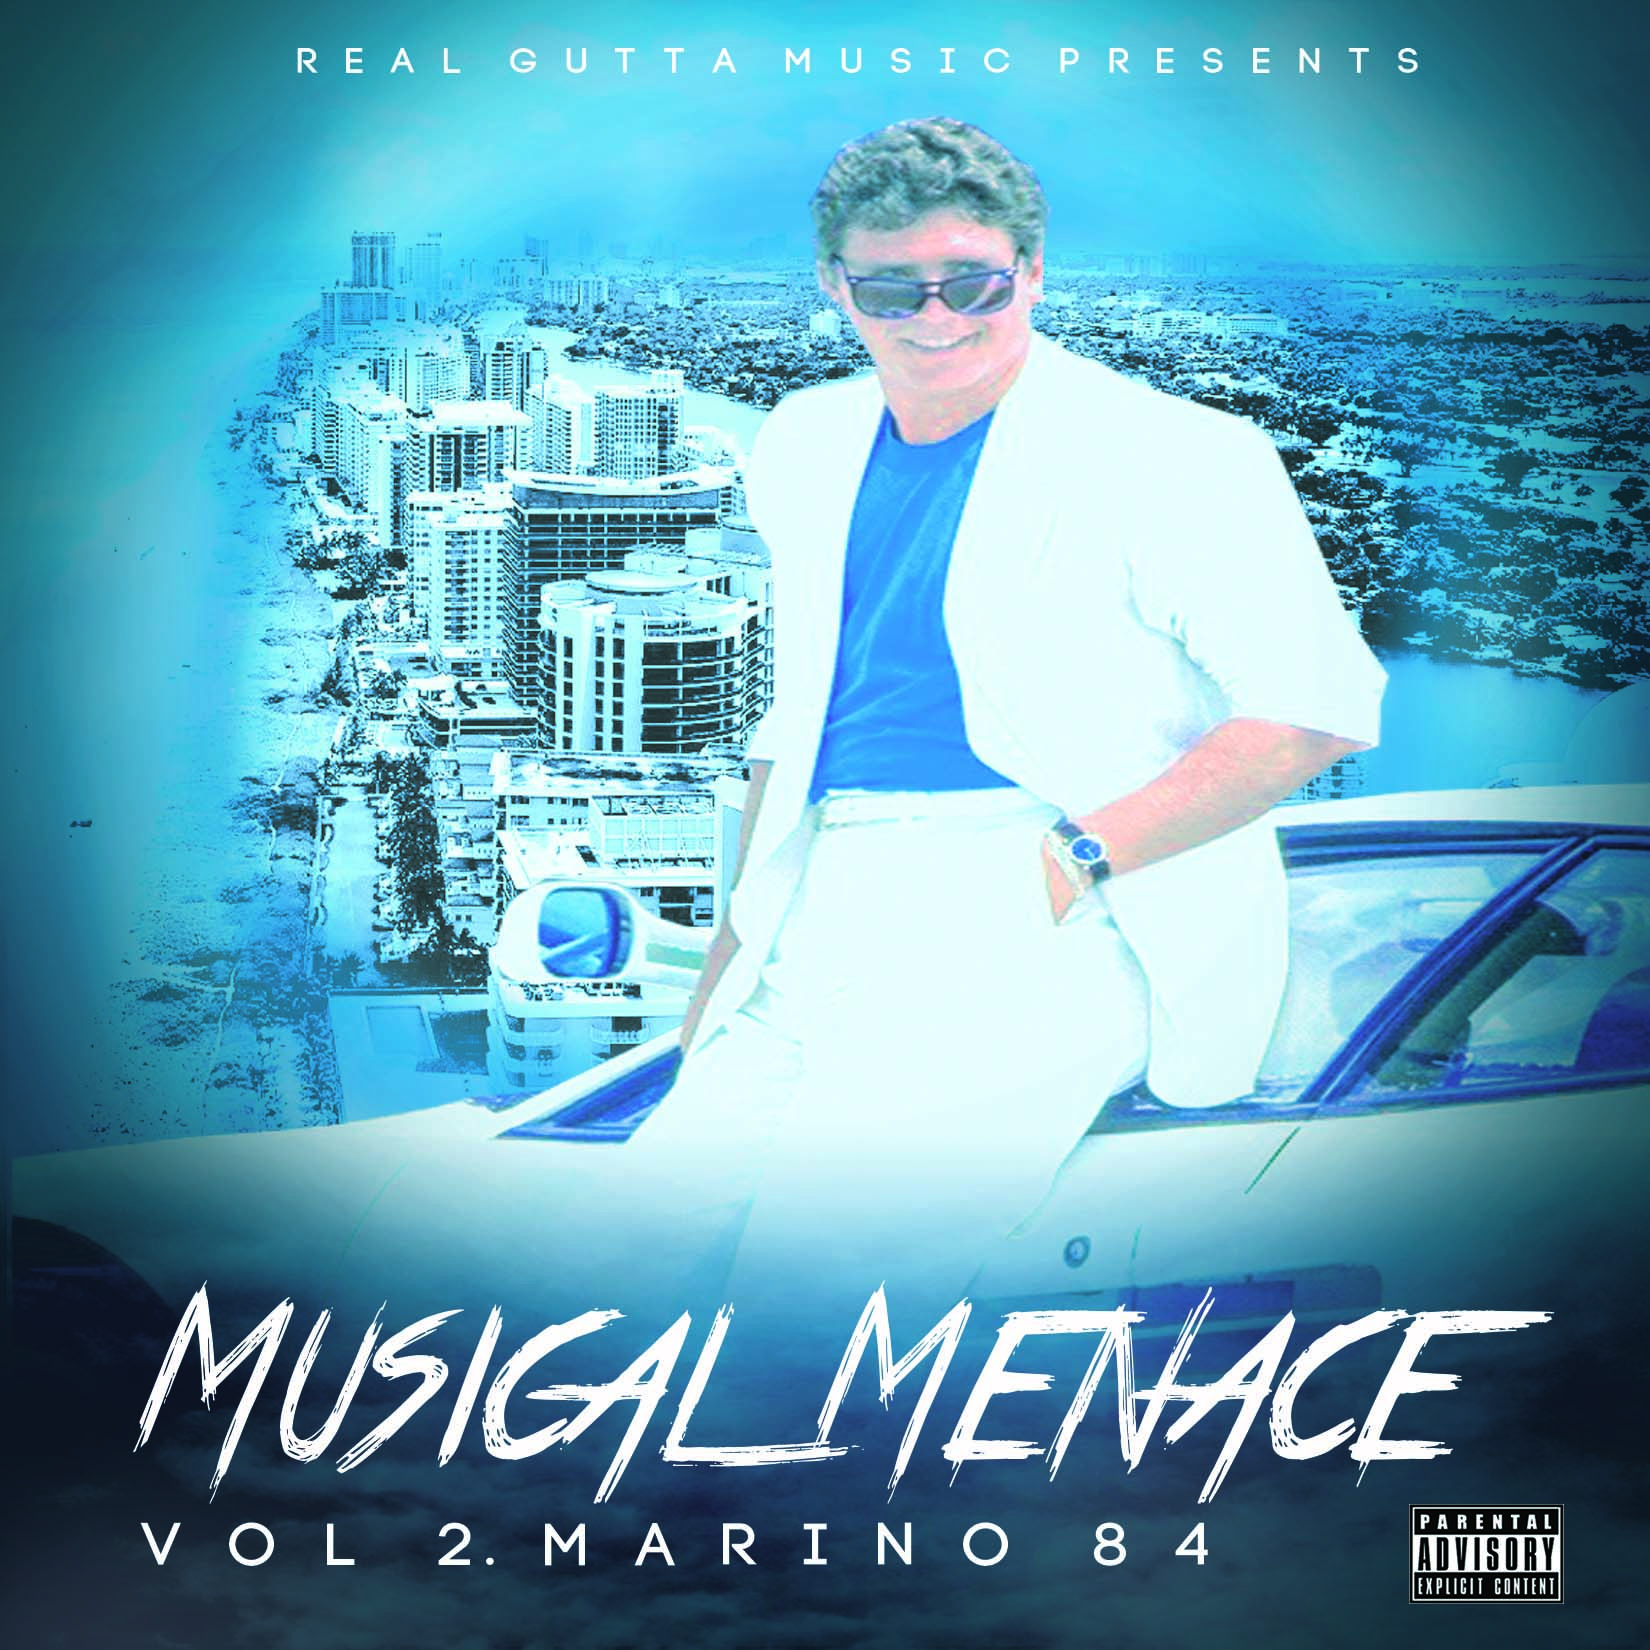 Real Gutta Music - Musical Menance Vol. 2: Marino 84